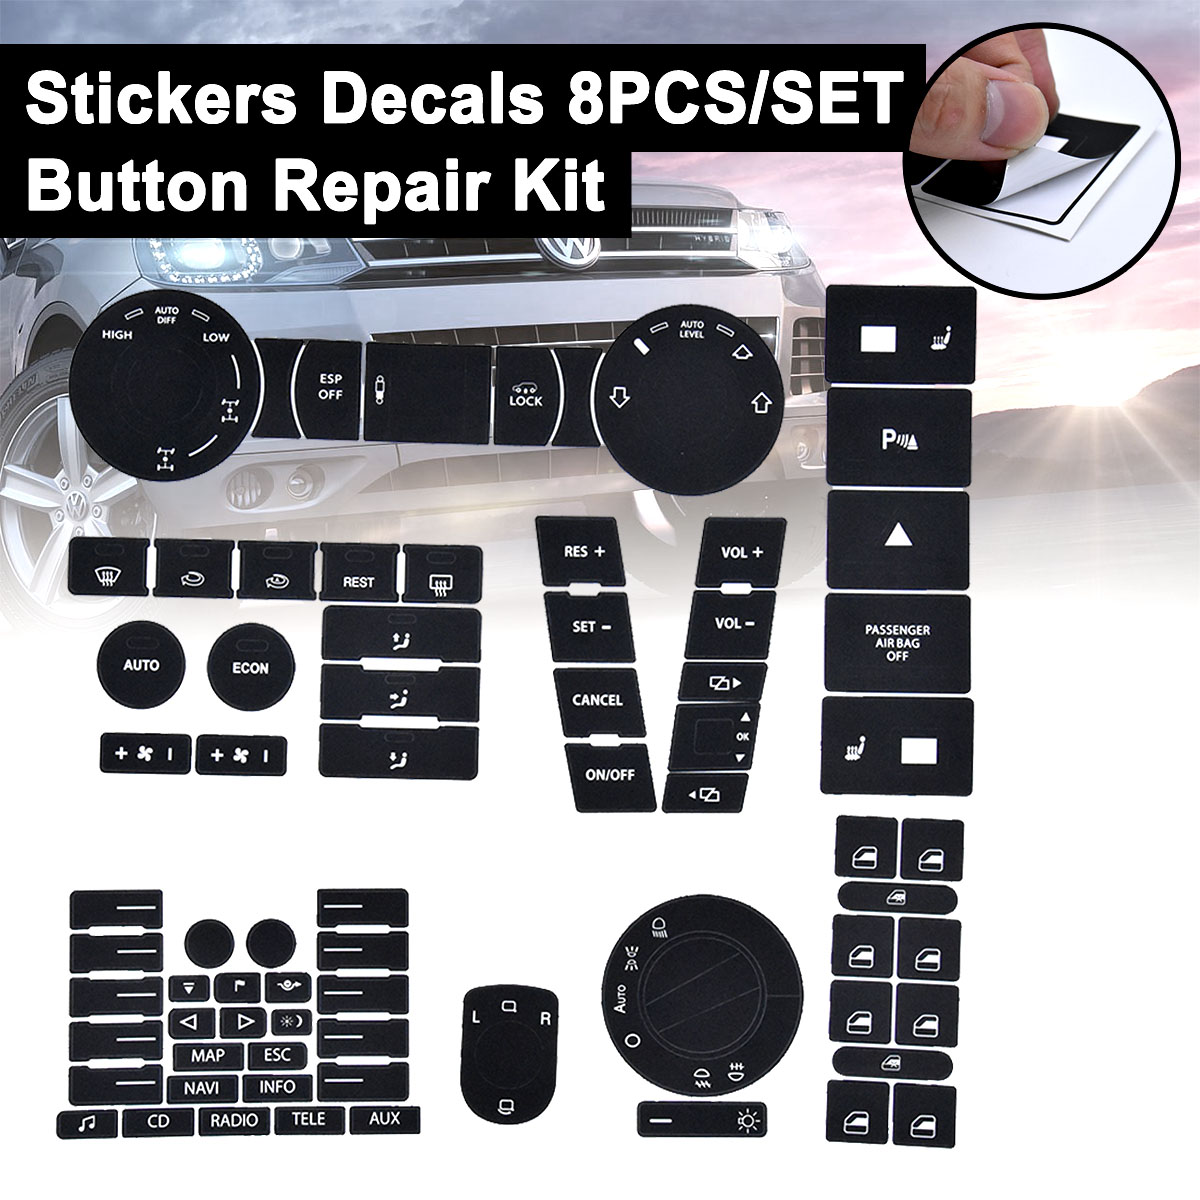 8pcs Car Stickers For Volkswagen Touareg 04-09 For VW Steering Wheel Windows Headlight Climate Switch Worn Button Repair Decals